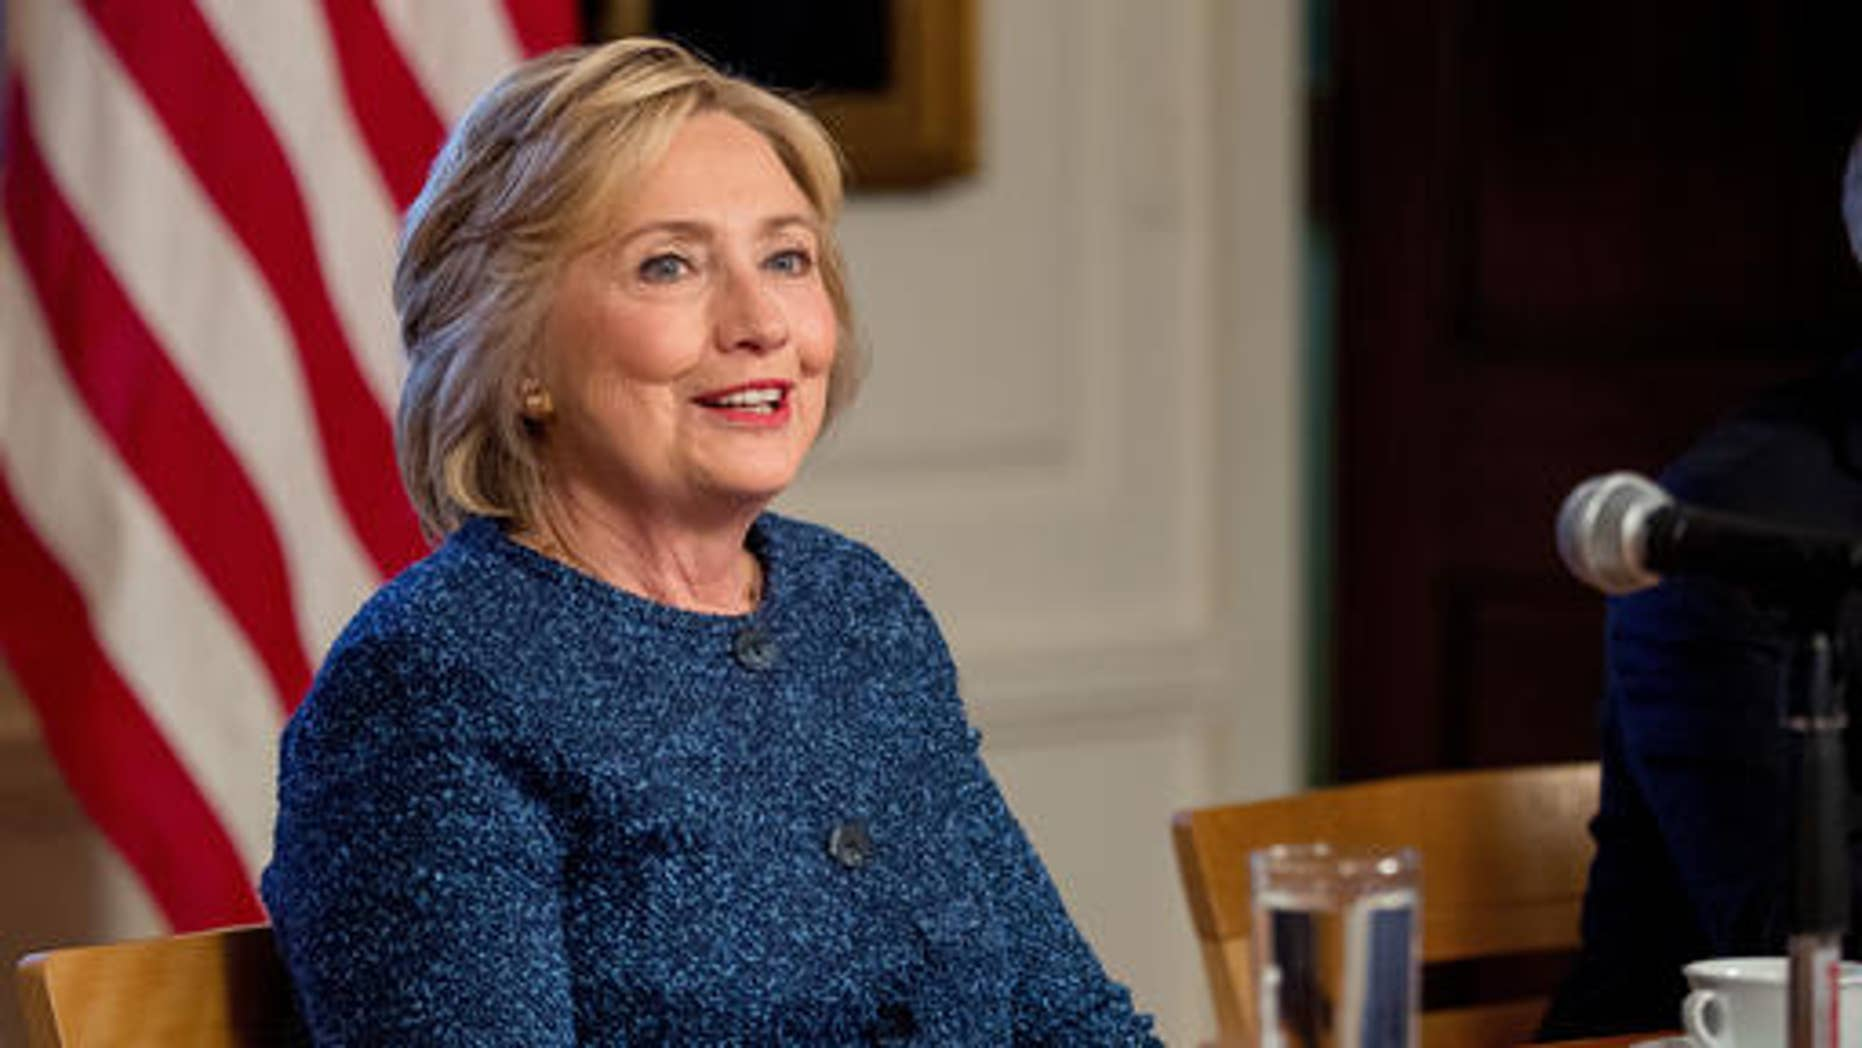 FILE - In this Sept. 9, 2016 file photo, Democratic presidential candidate Hillary Clinton attends a National Security working session at the Historical Society Library in New York.